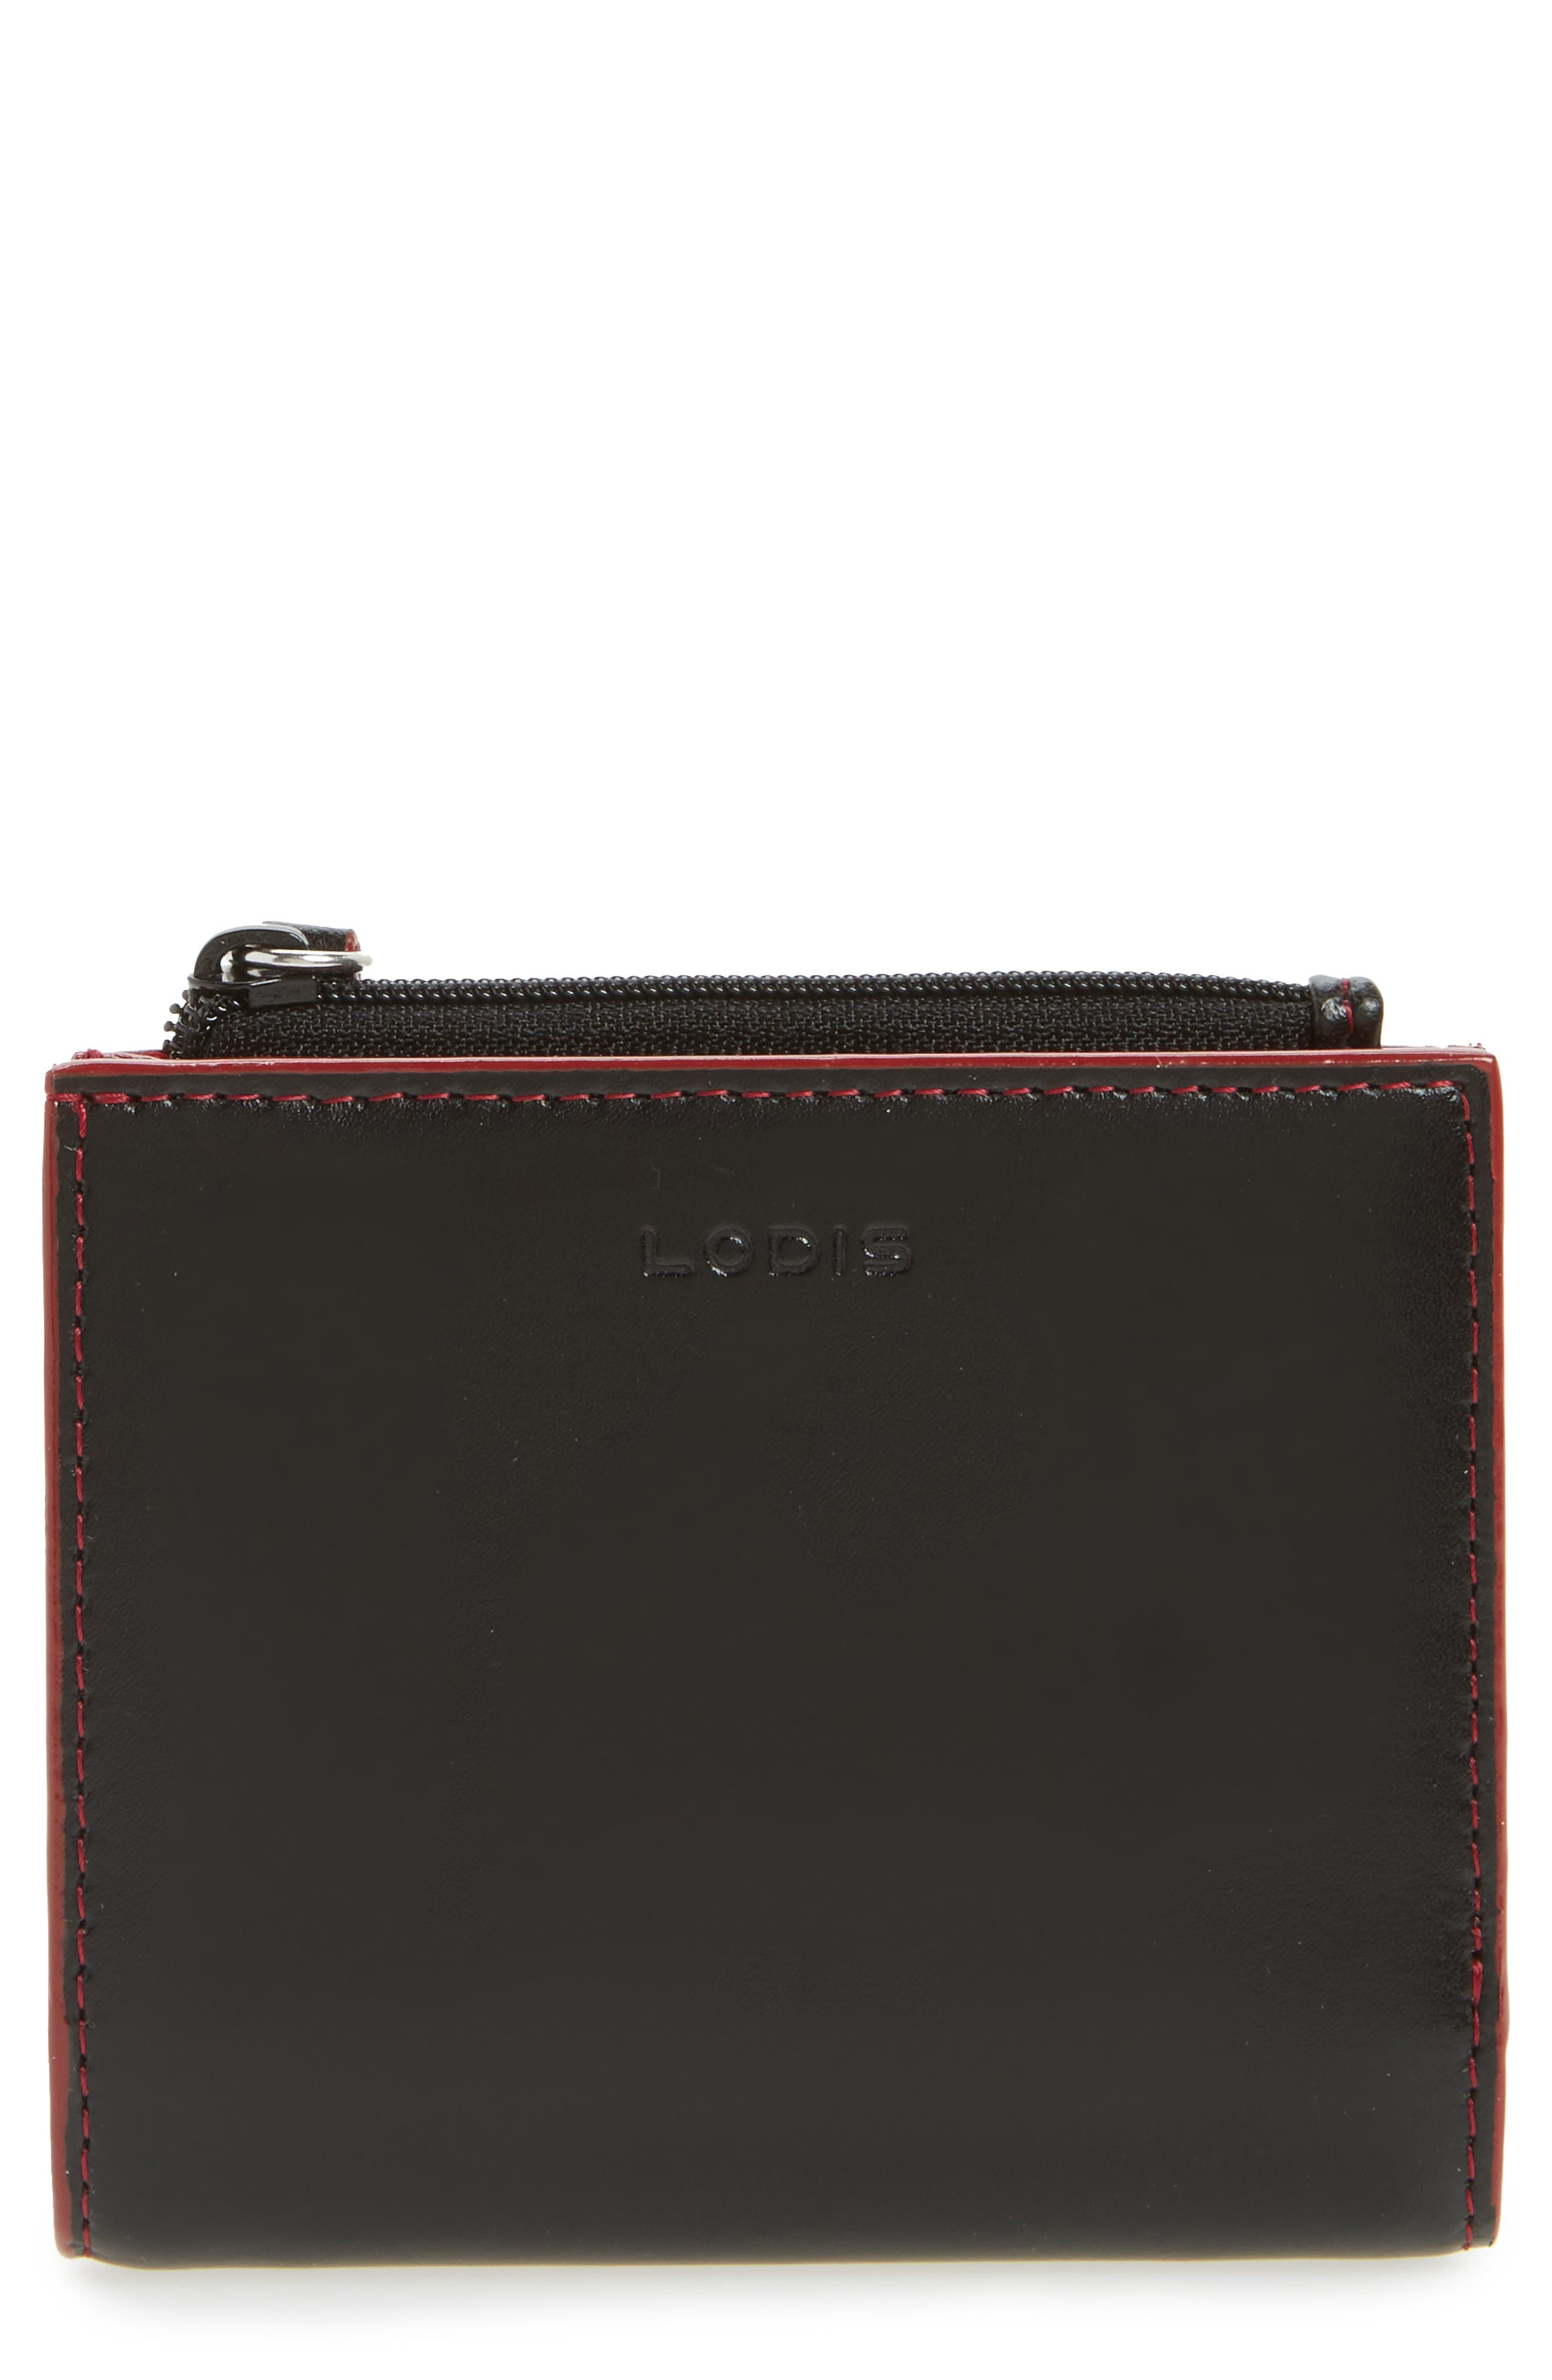 Audrey Under Lock & Key Aldis Leather Wallet,                             Main thumbnail 1, color,